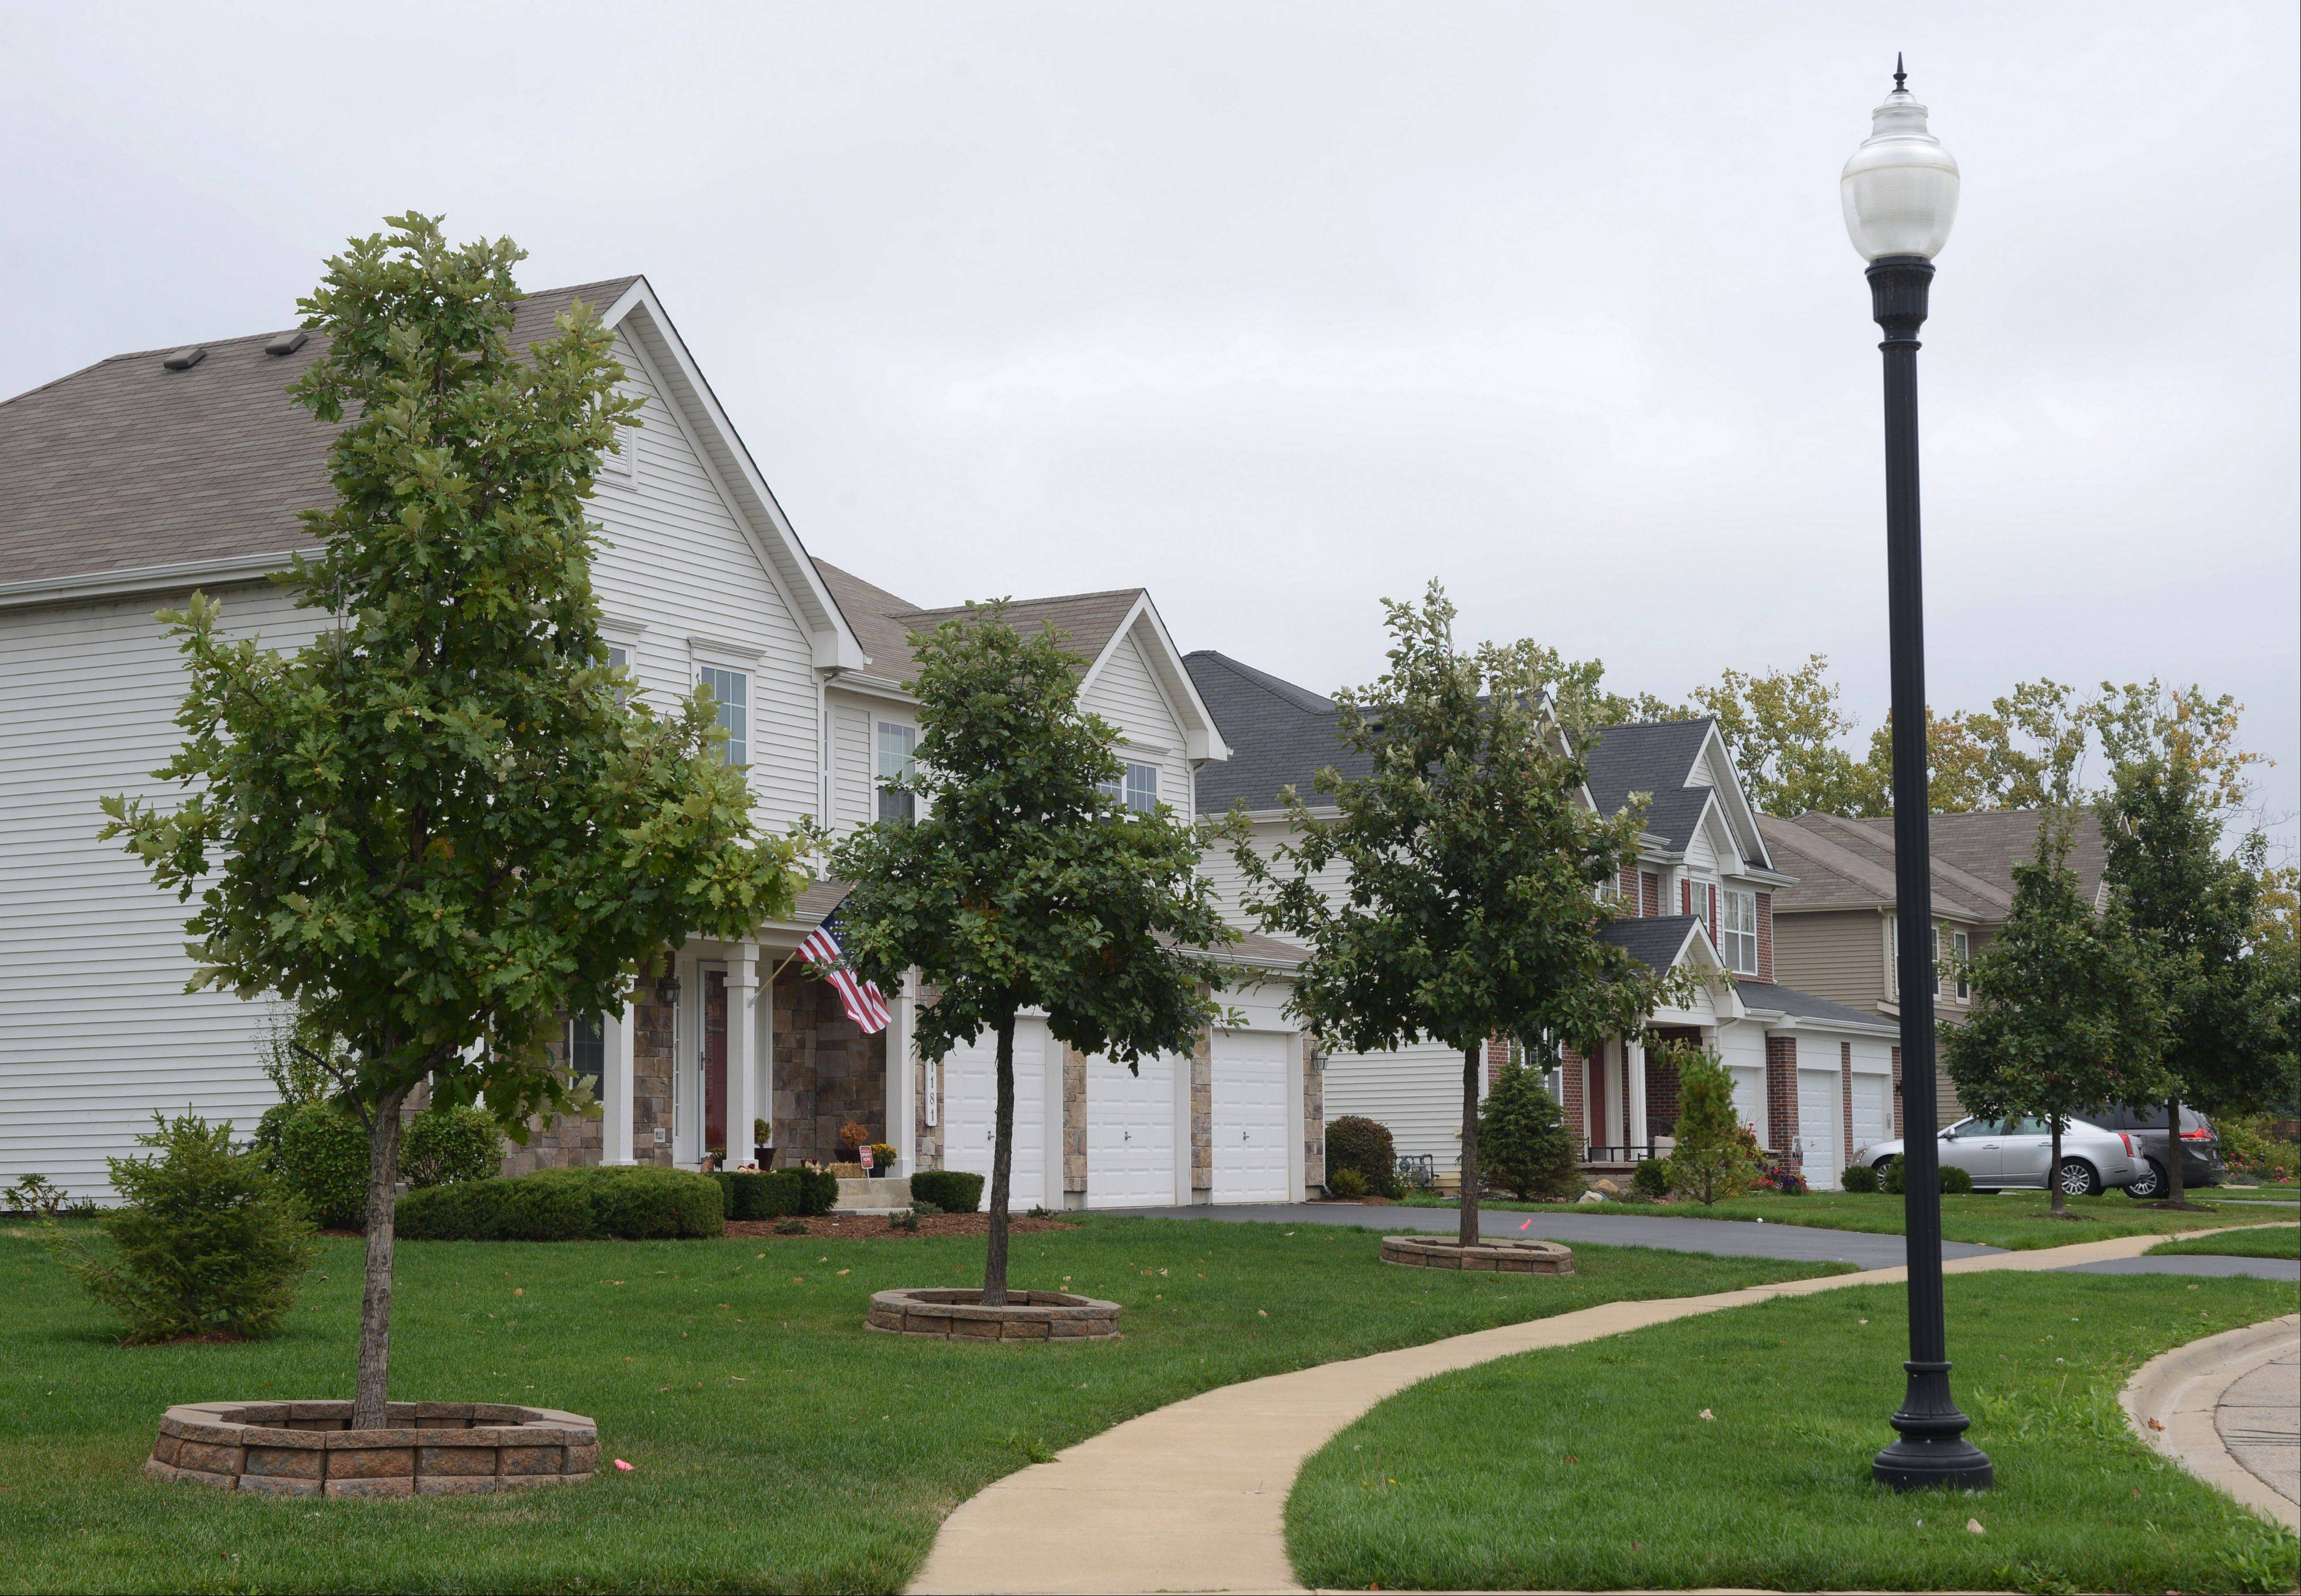 Theses homes along Tulip Tree Lane are typical of those found in the Cedar Ridge Estates subdivision off Cedar Lake Road in Lake Villa.